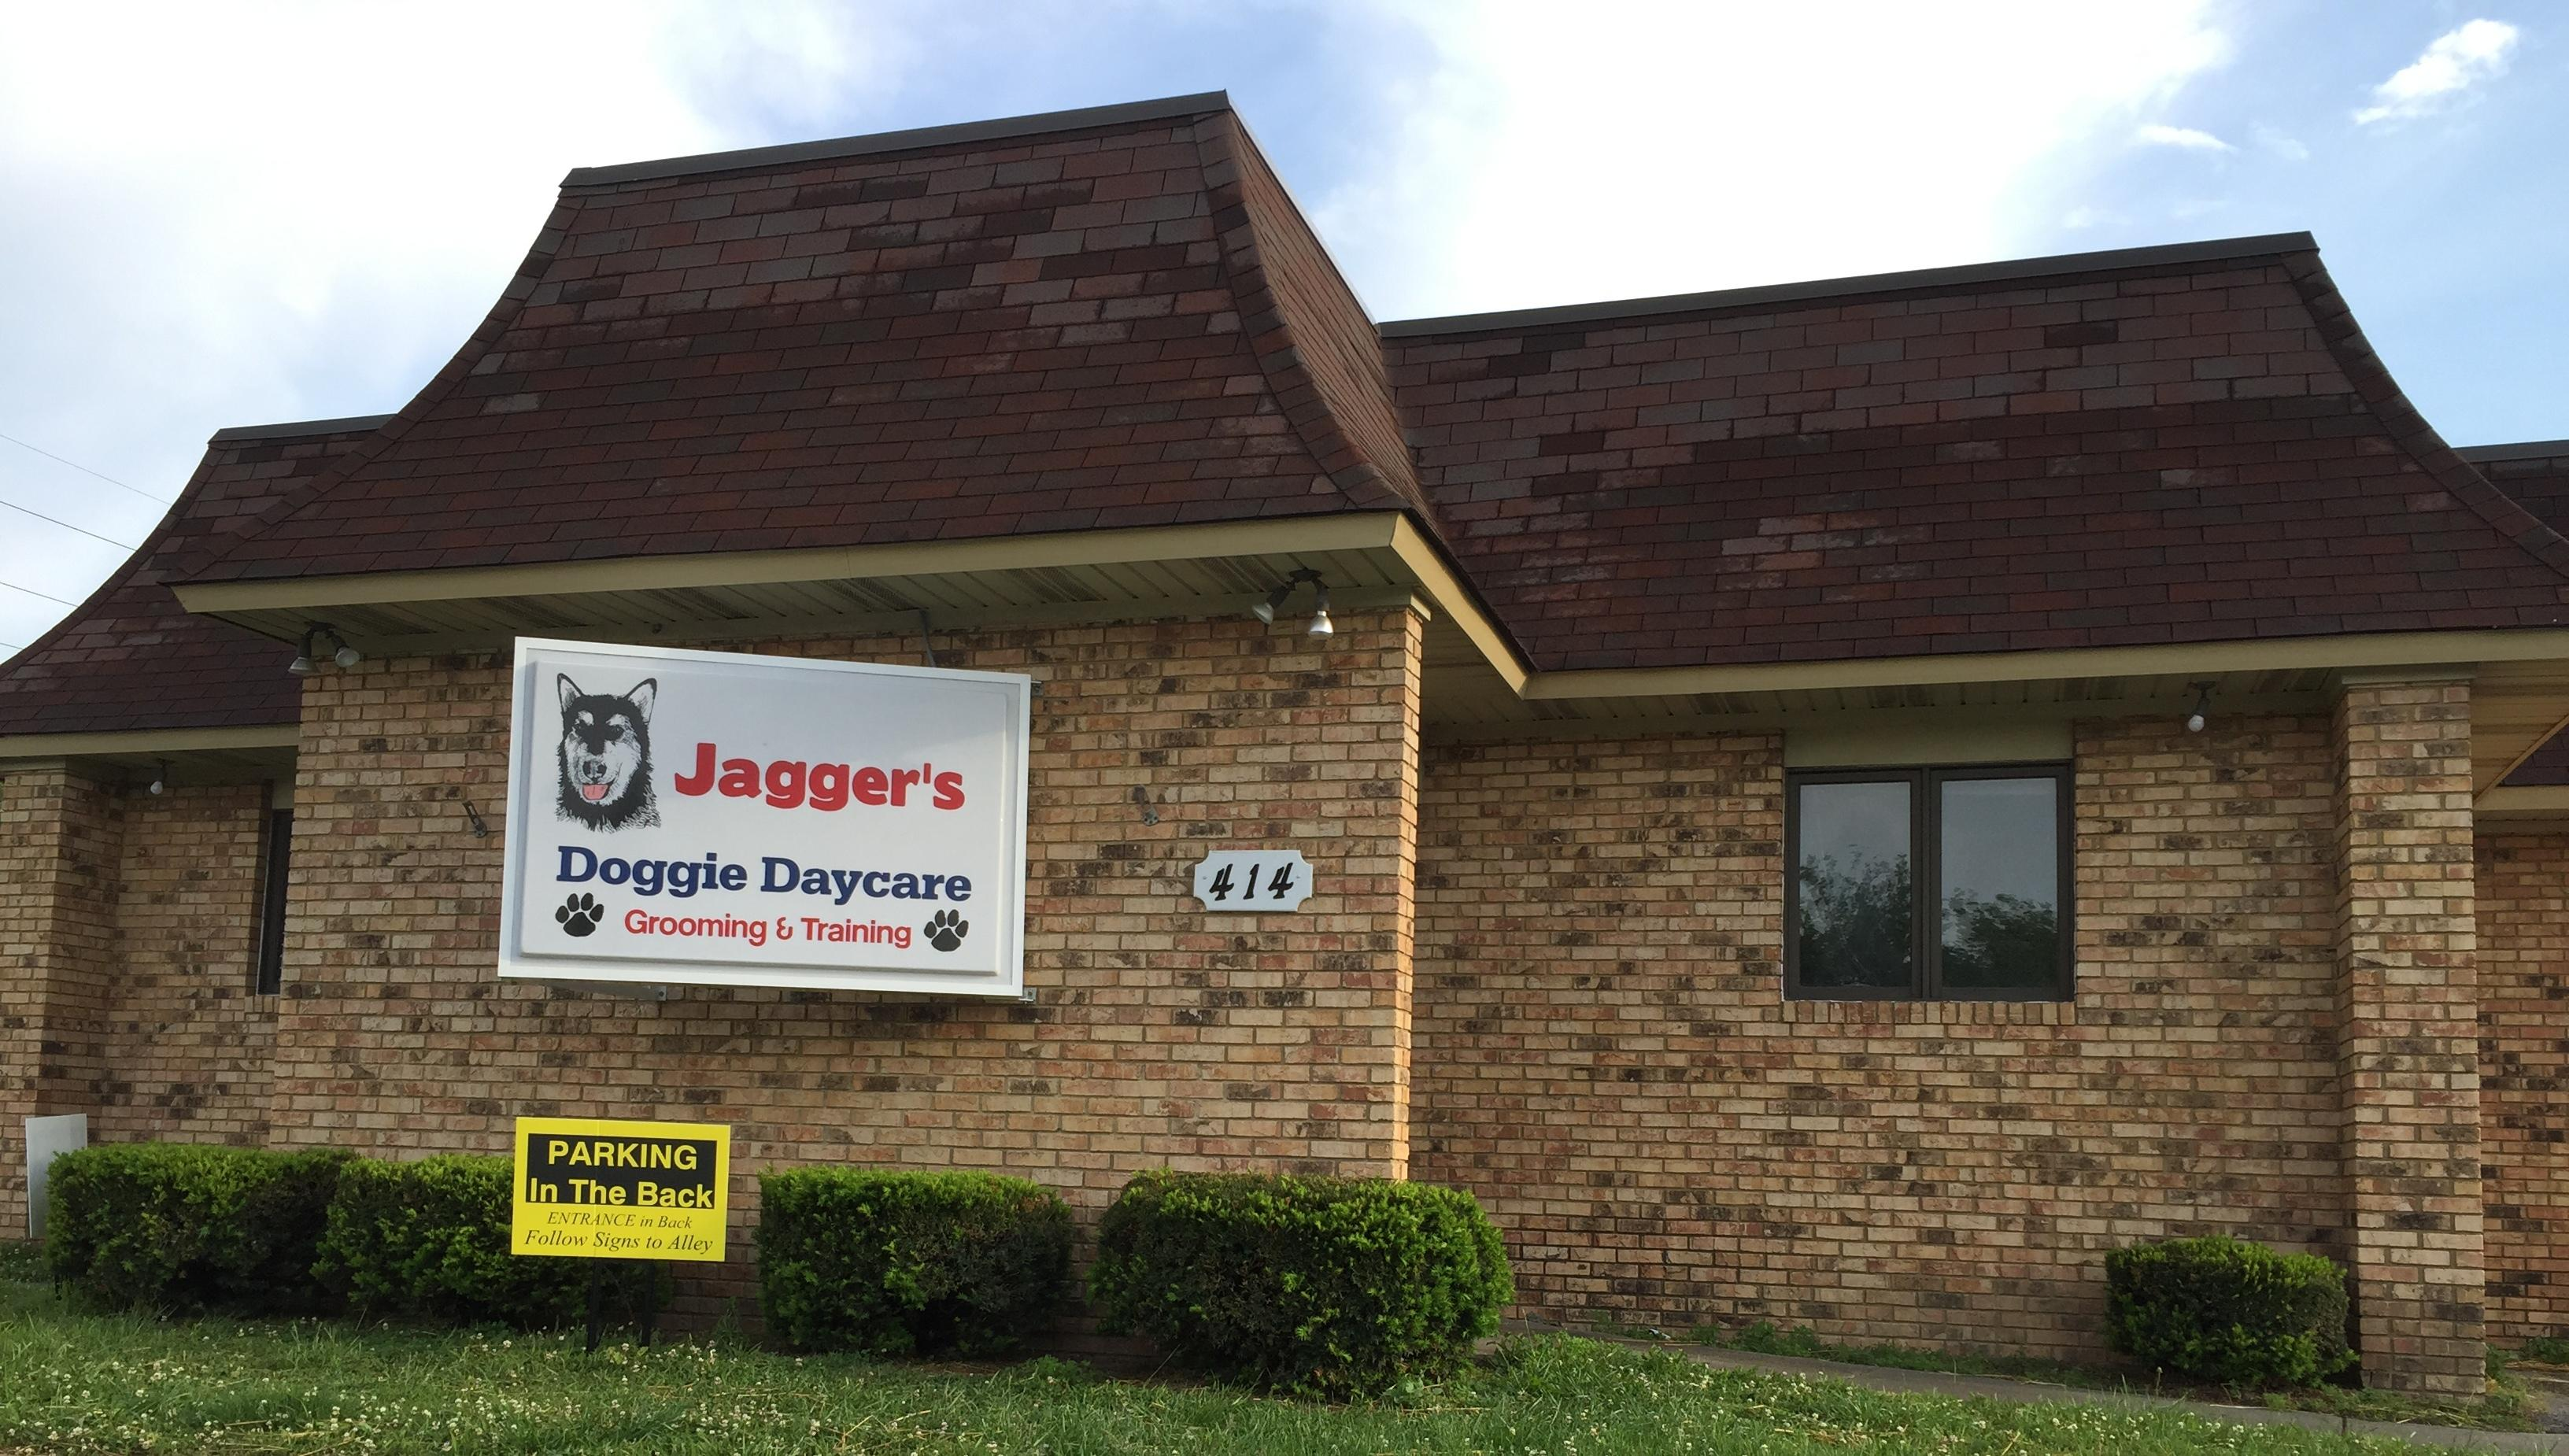 Jagger's Doggie Daycare, Dog Grooming, Training & Boarding image 24